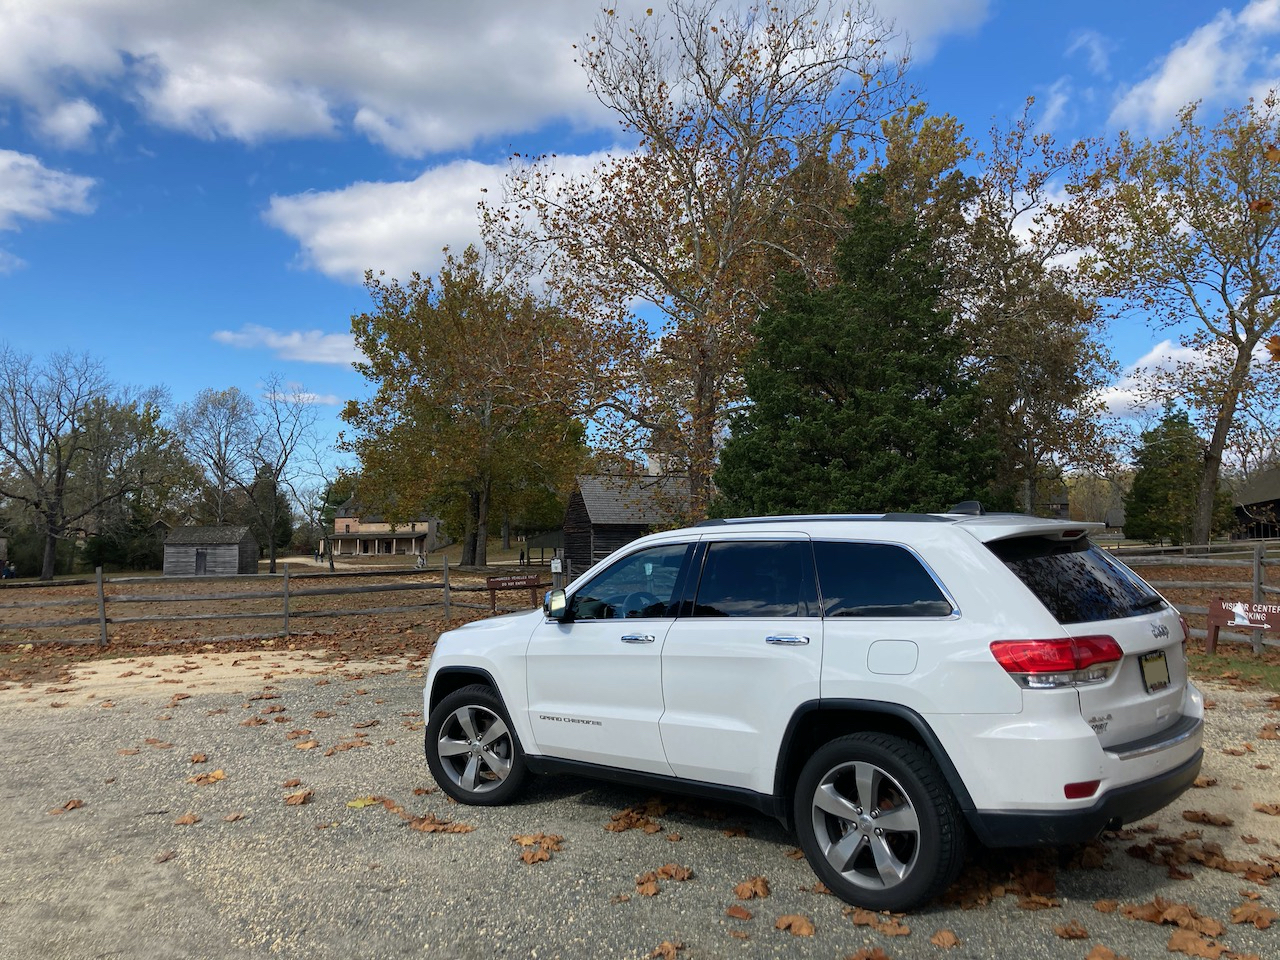 White 2014 Jeep Grand Cherokee parked in front of historic village.